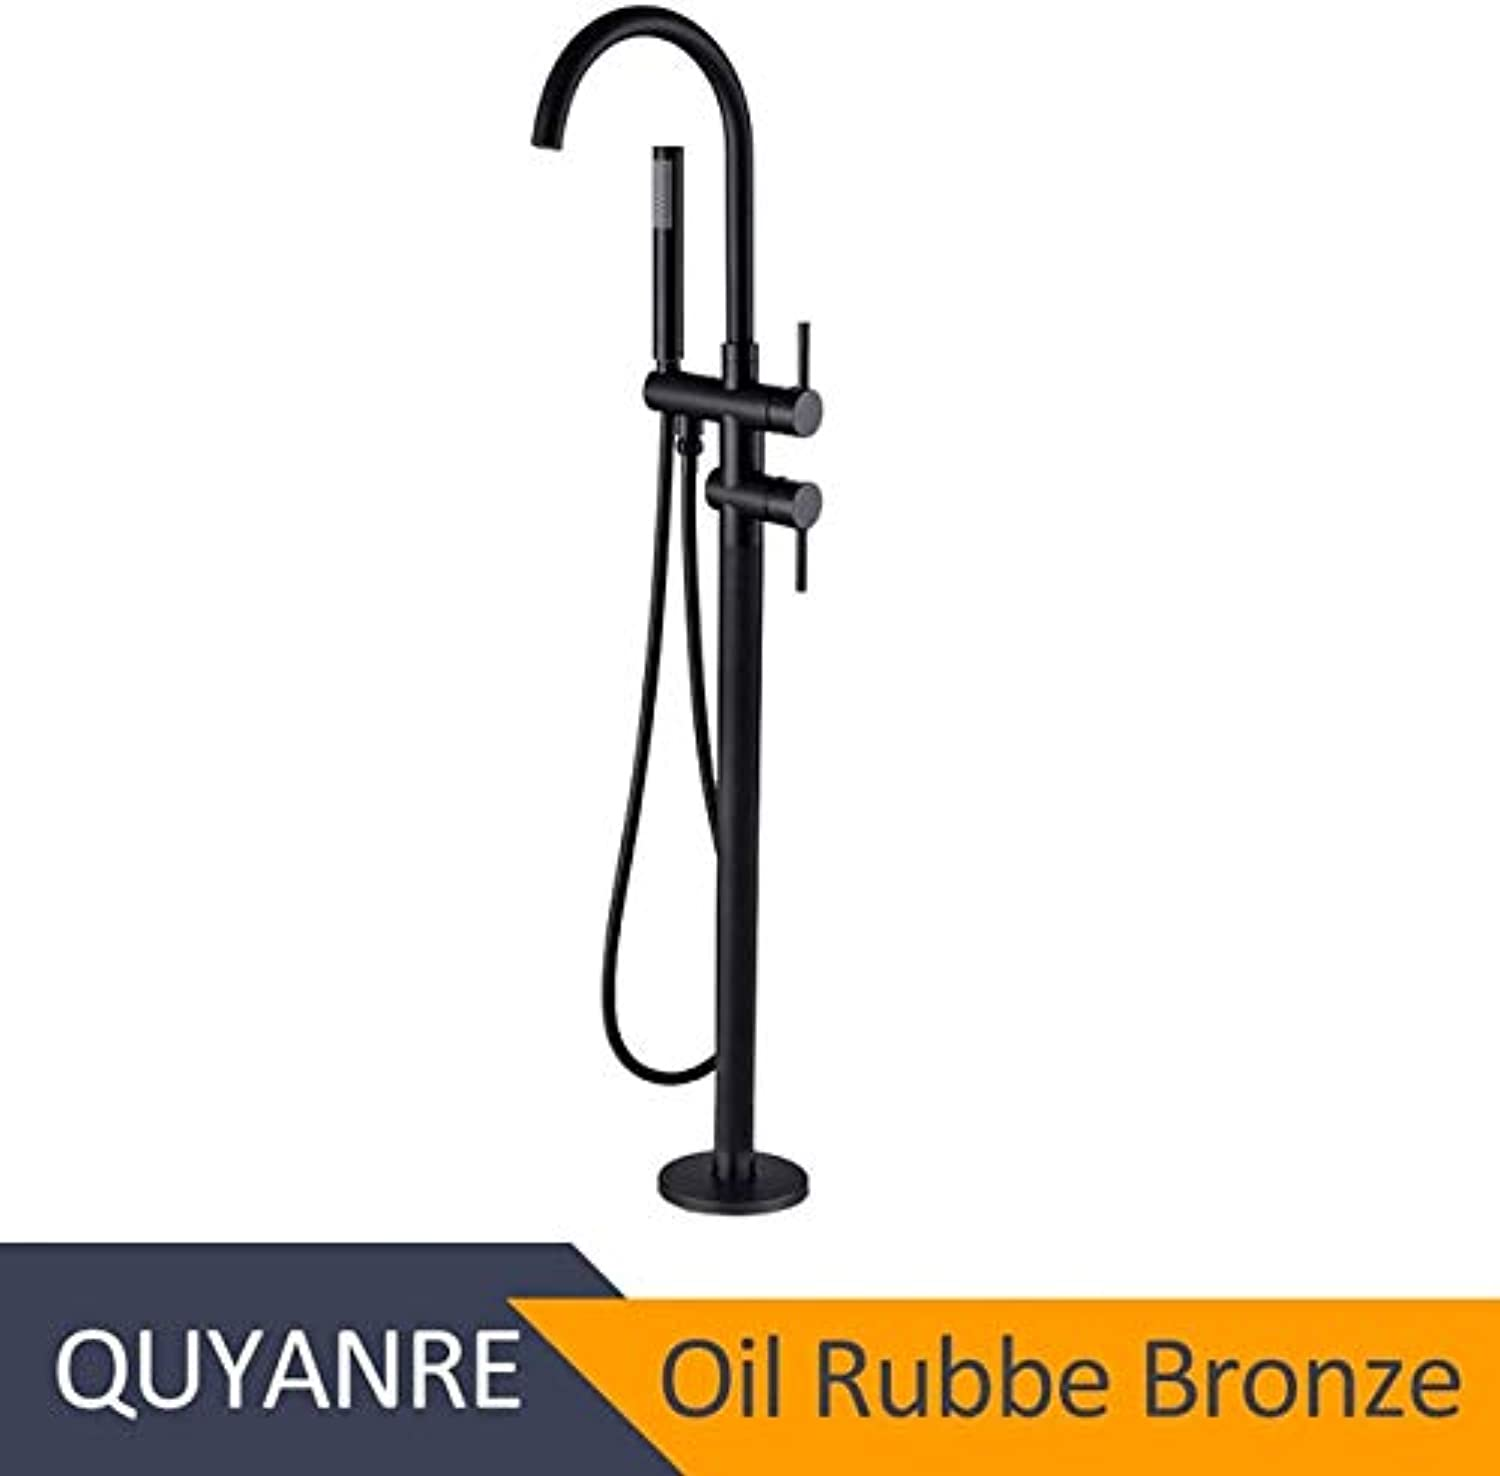 U-Enjoy Chandelier Bathtub Floor Black Stand Mixer Top Quality Single Faucet Handle Mixer Tap redation Spout with 360 Abs Handshower Bath Mixer Shower Free Shipping [Oil Rubber Bronze]